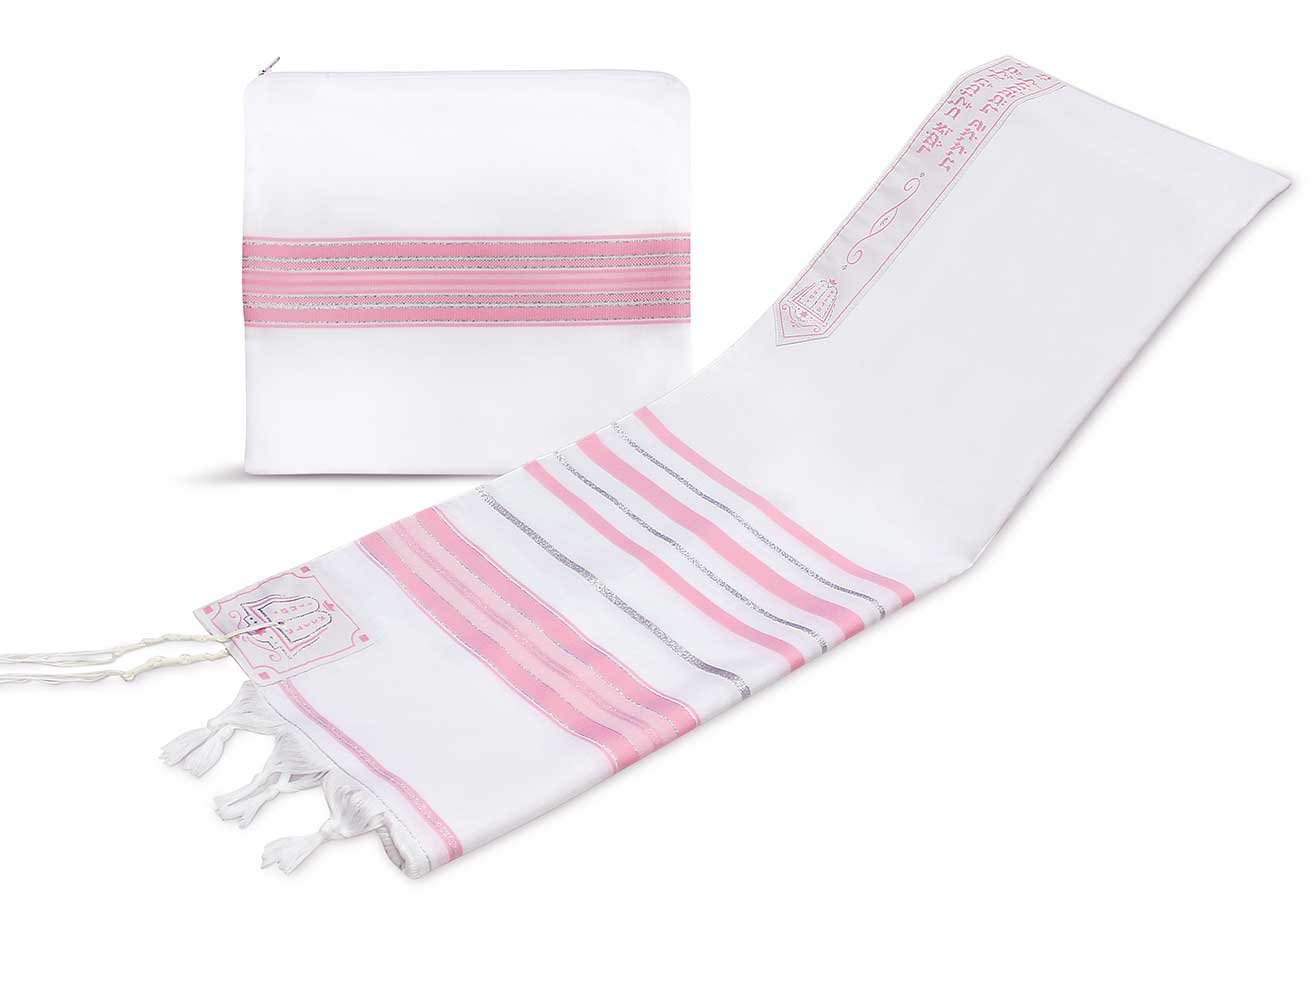 Zion Judaica Tallit Prayer Shawl - Fine Polyester Talis with a Matching Zippered Bag - Certified Kosher - Imported from Israel - Optional Personalization (Pink Silver, 18'' x 72'')